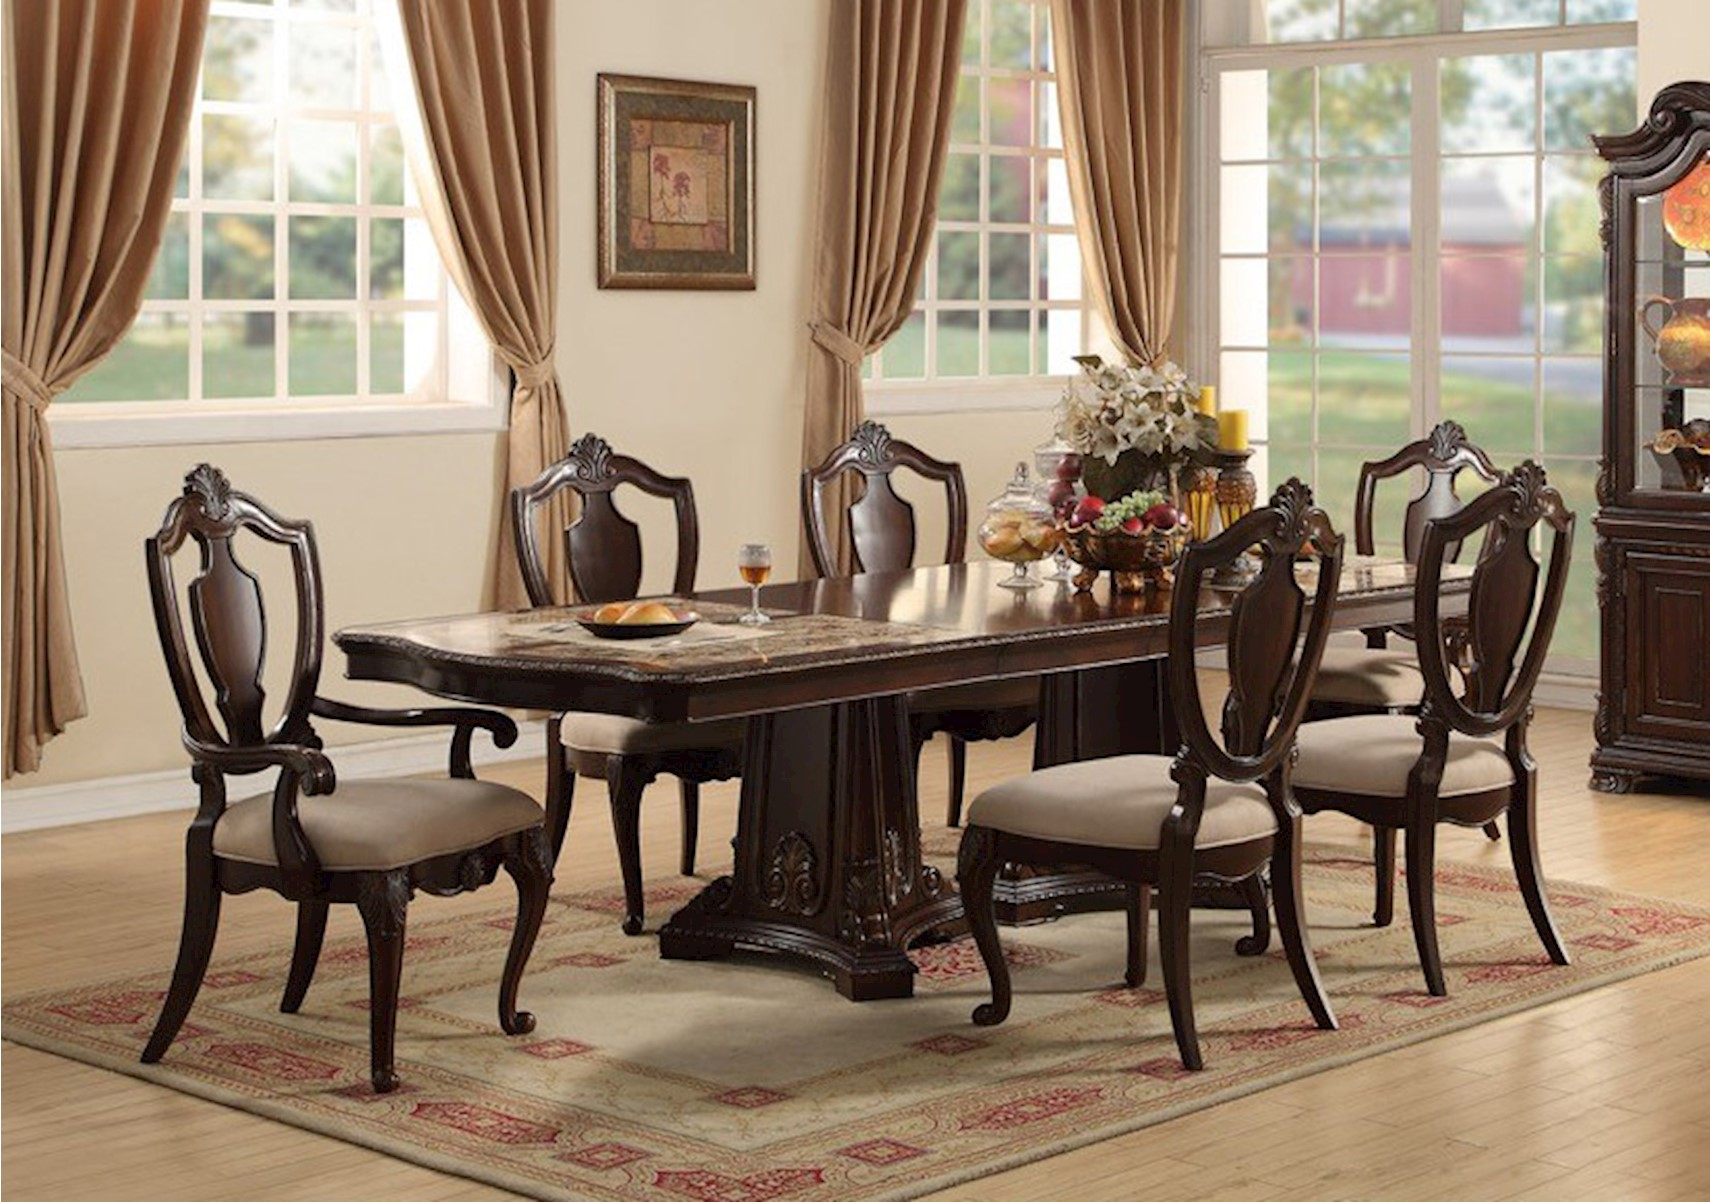 Lacks | Riviera 9 Pc Dining Room Set